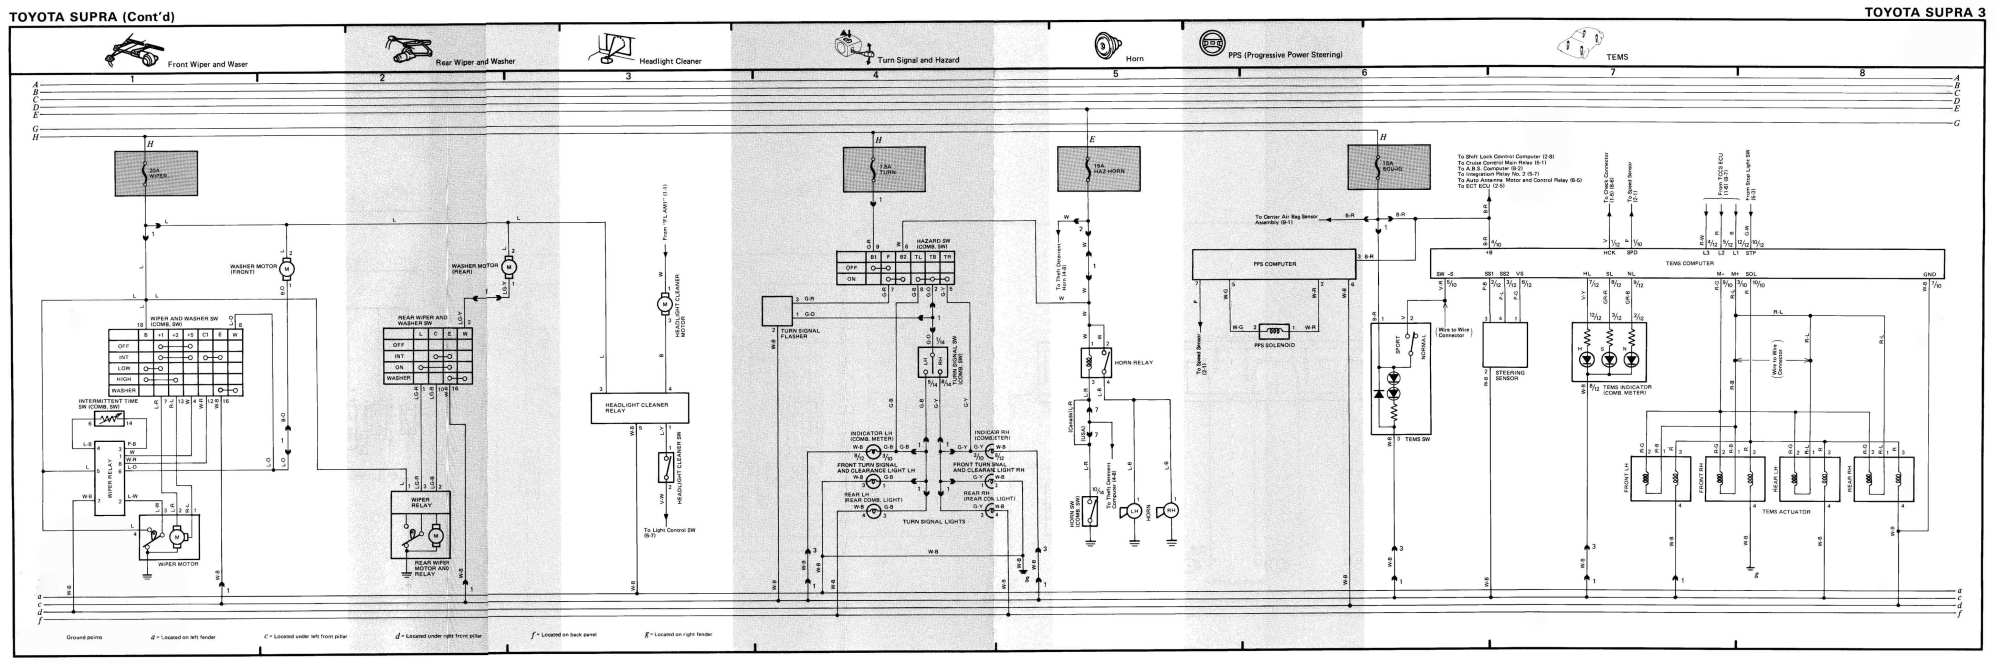 hight resolution of 1987 toyota supra wiring diagram wiring diagrams scematic jdm mk3 supra 87 supra wiring diagram